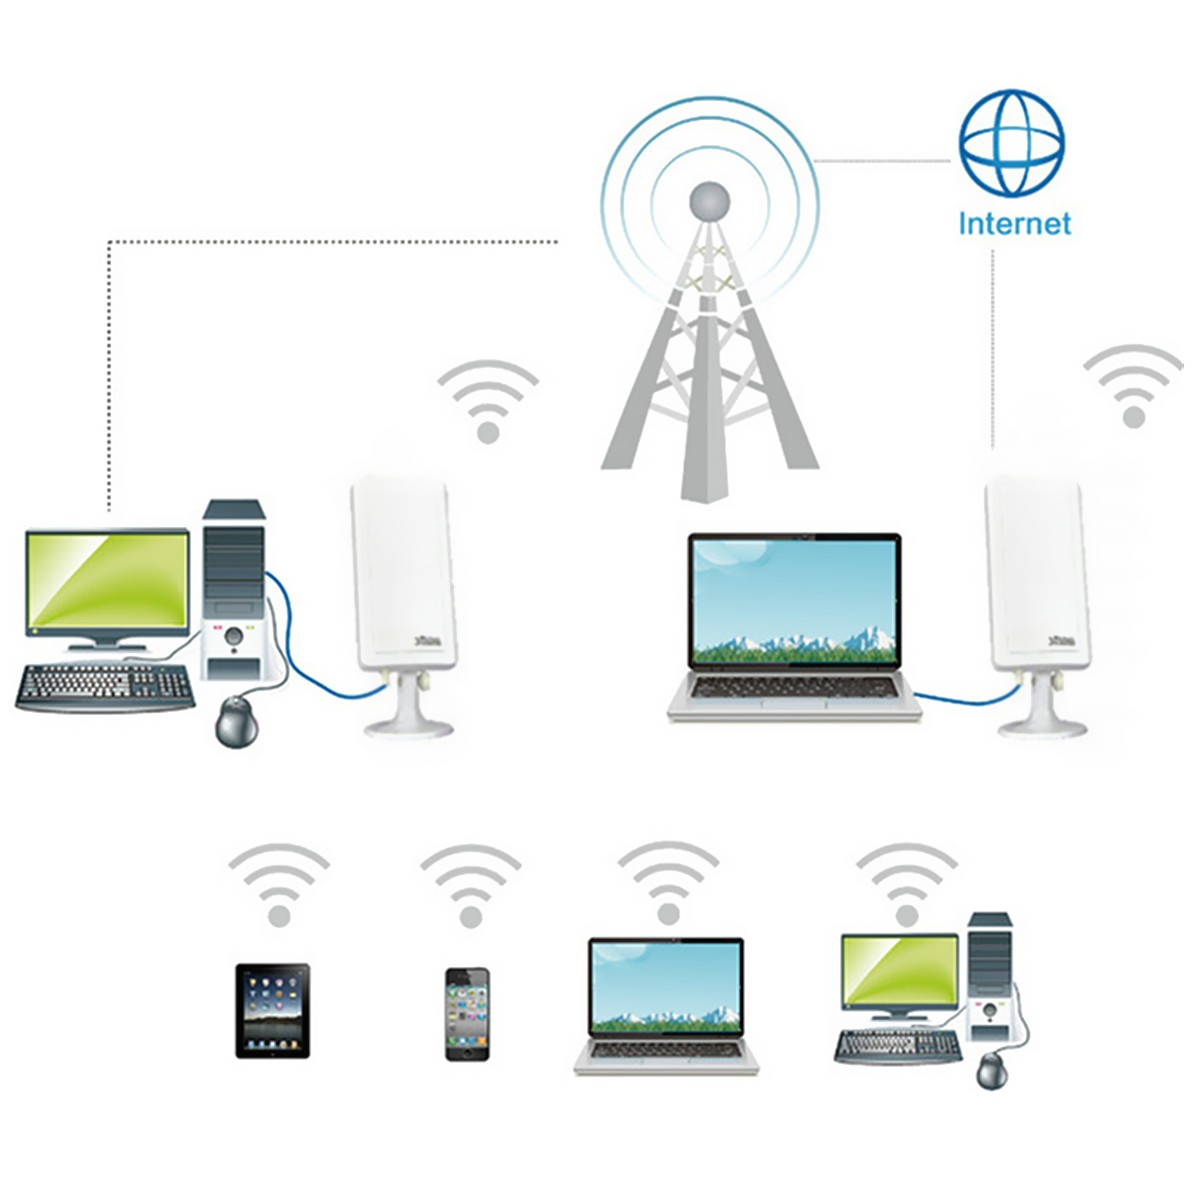 Wifi deals without phone line nz